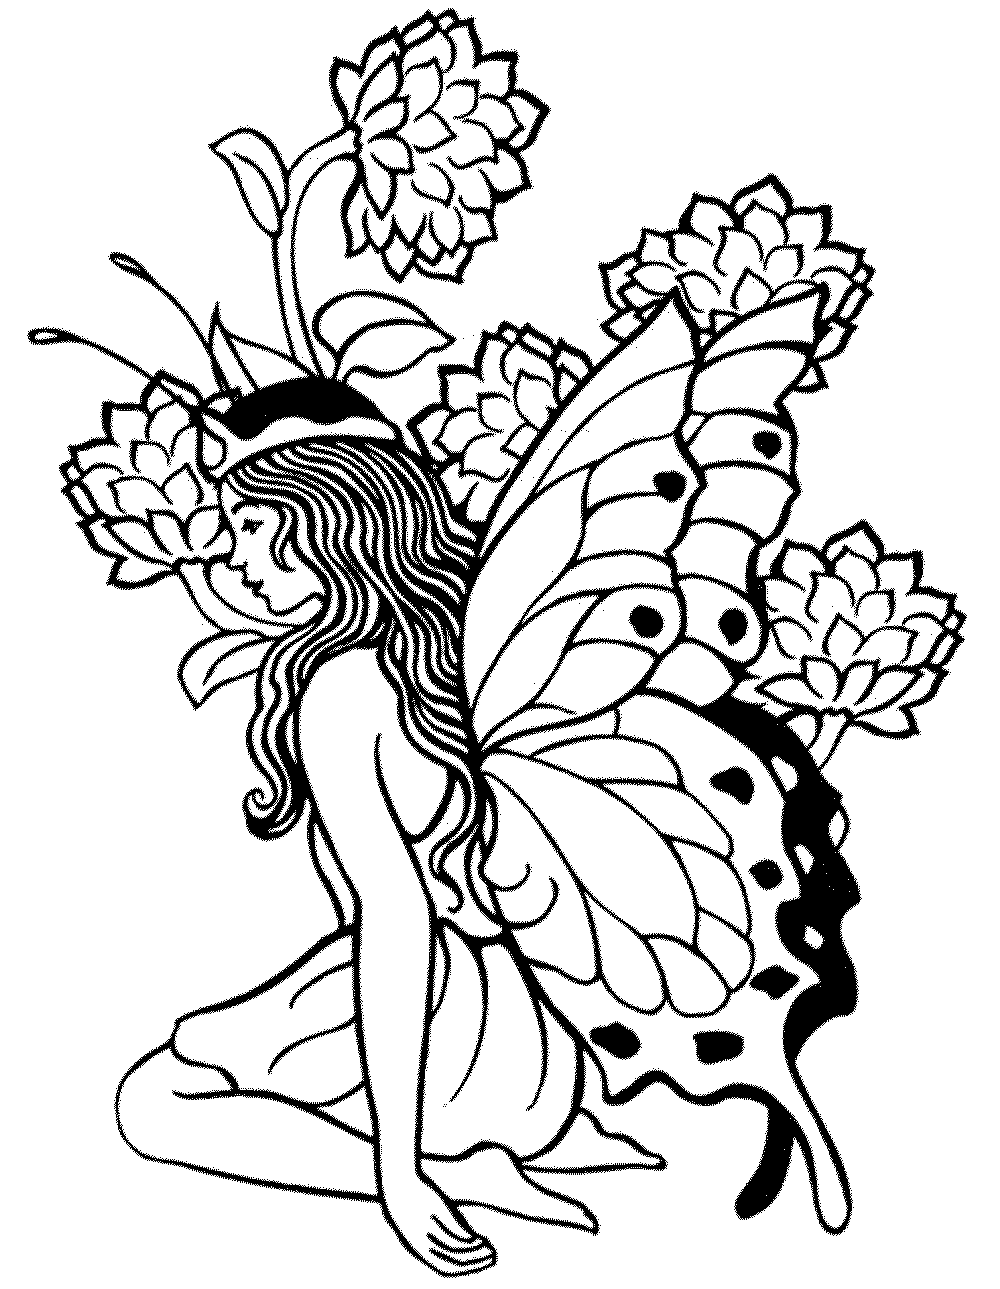 Printable Fairy Coloring Pages For Adults - Coloring Home | free online coloring pages for adults funny